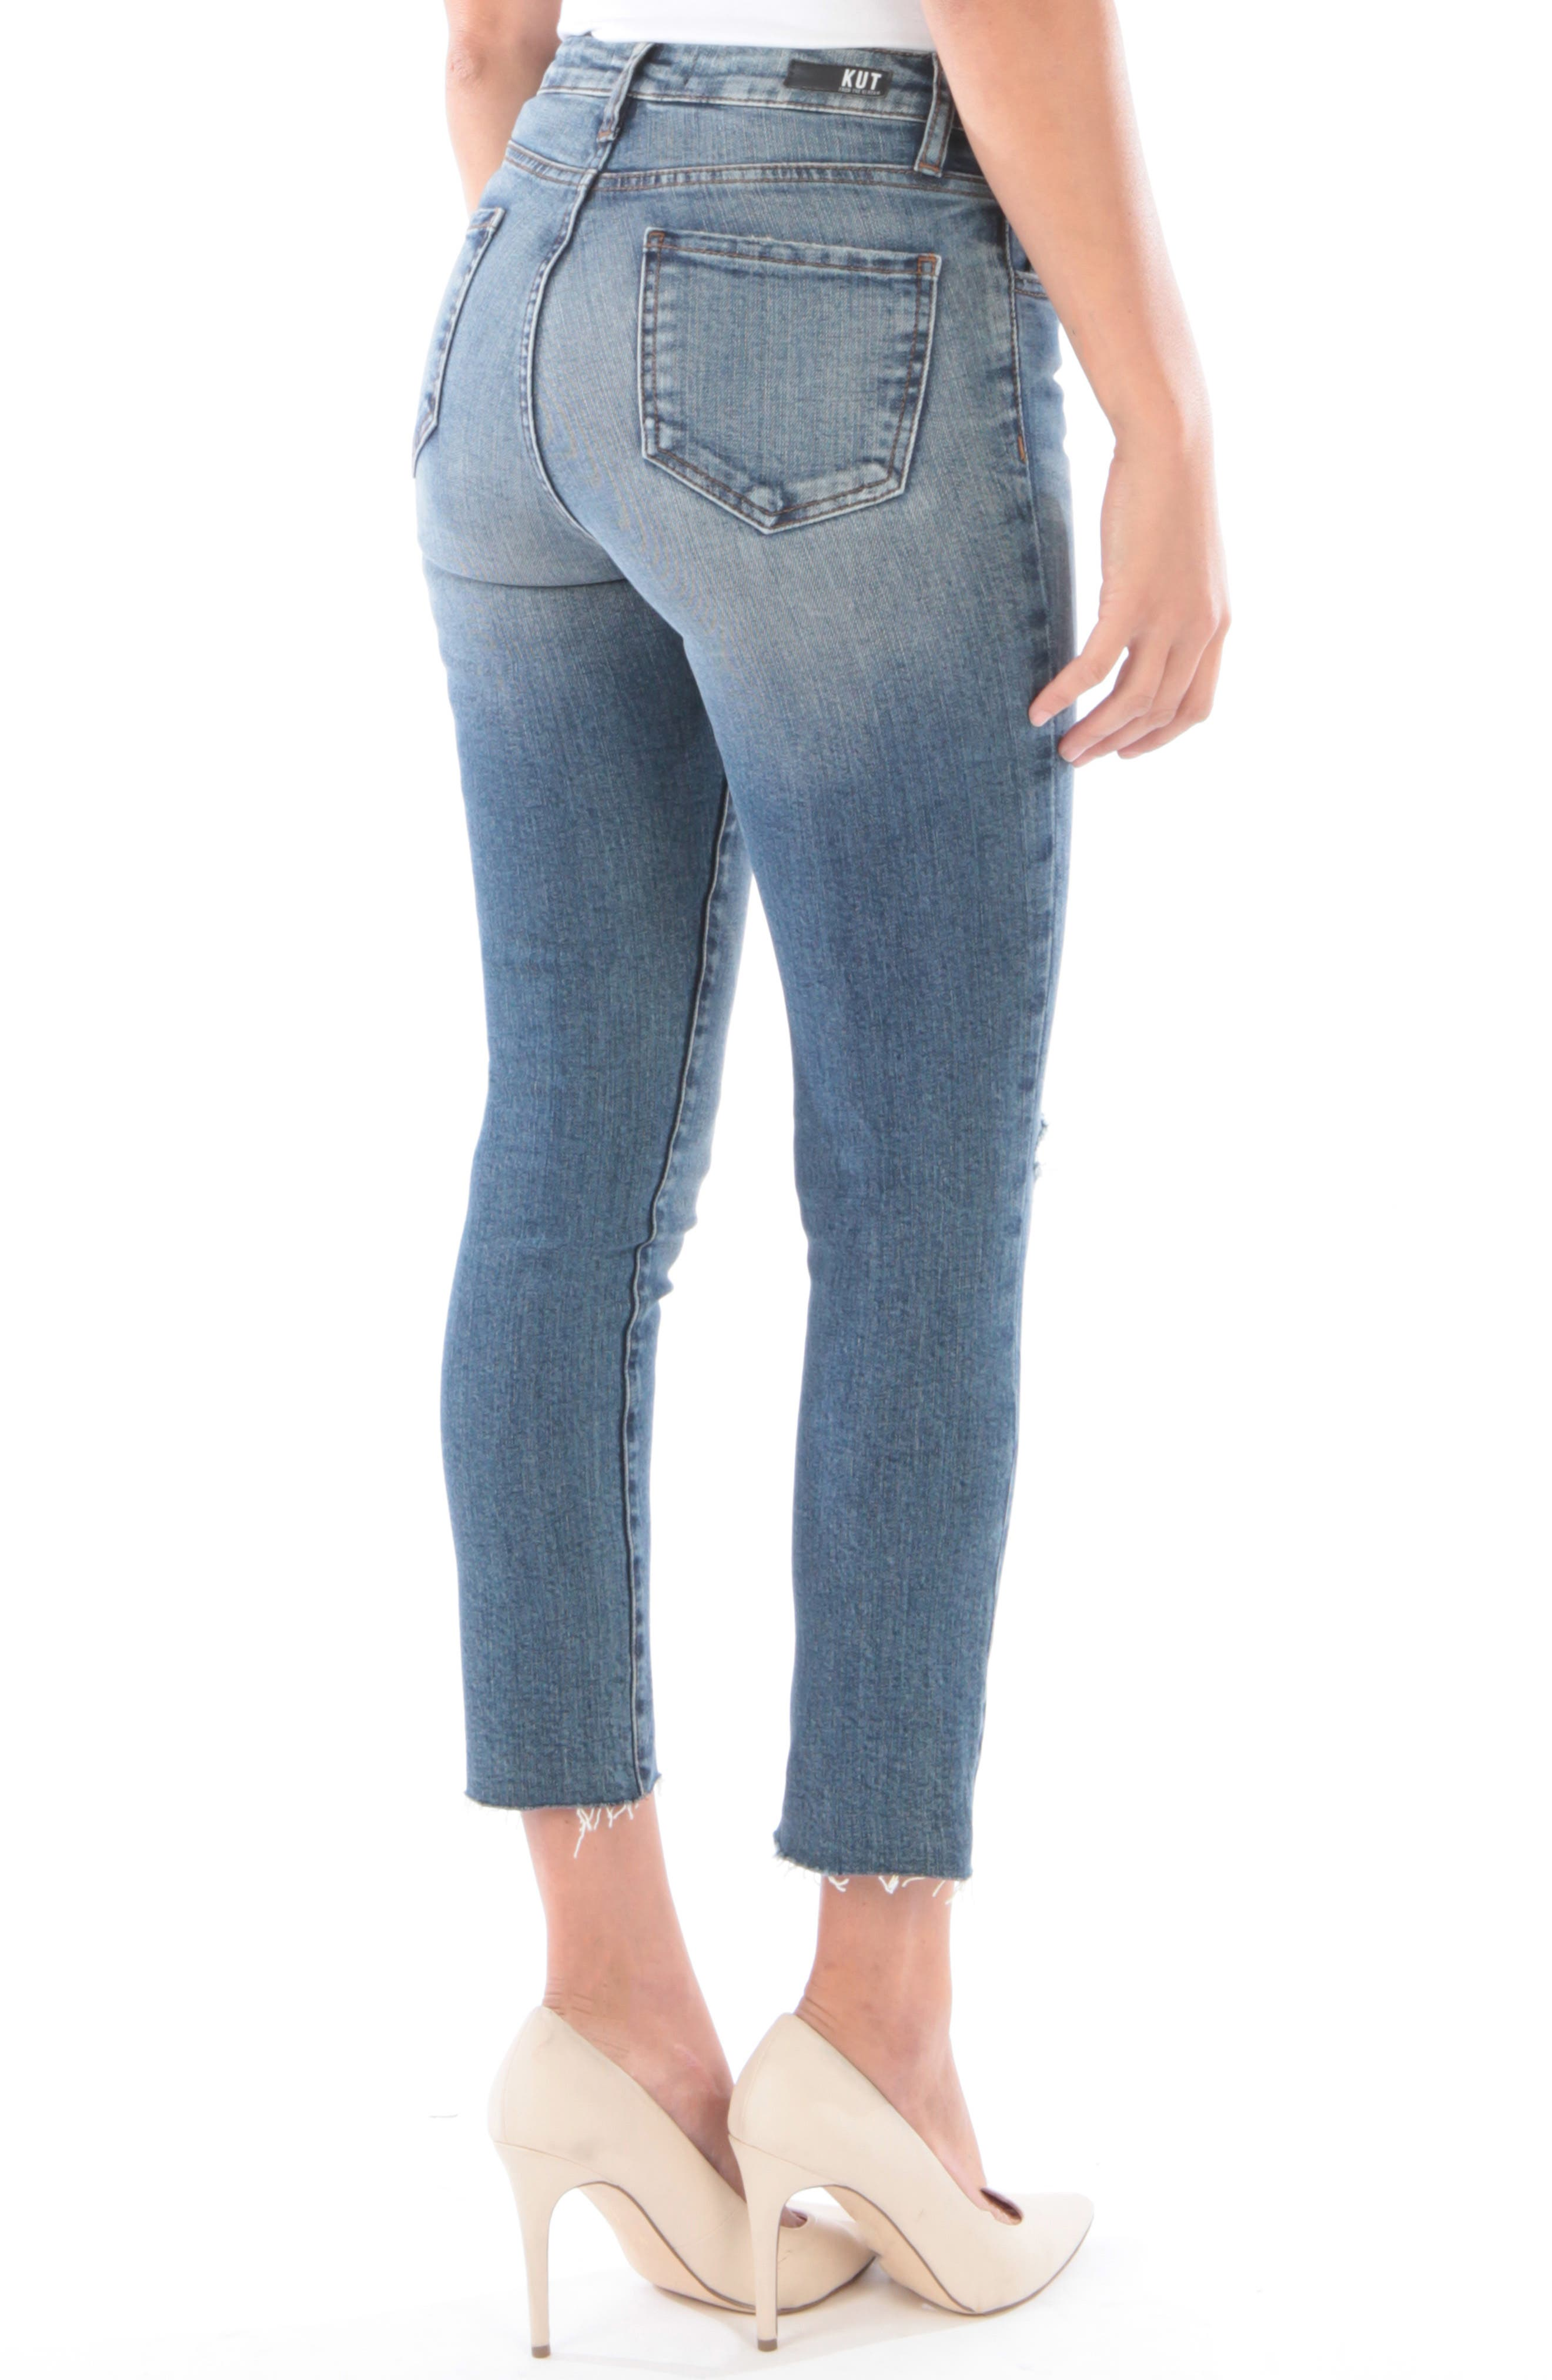 Reese Ripped Ankle Straight Leg Jeans,                             Alternate thumbnail 2, color,                             402